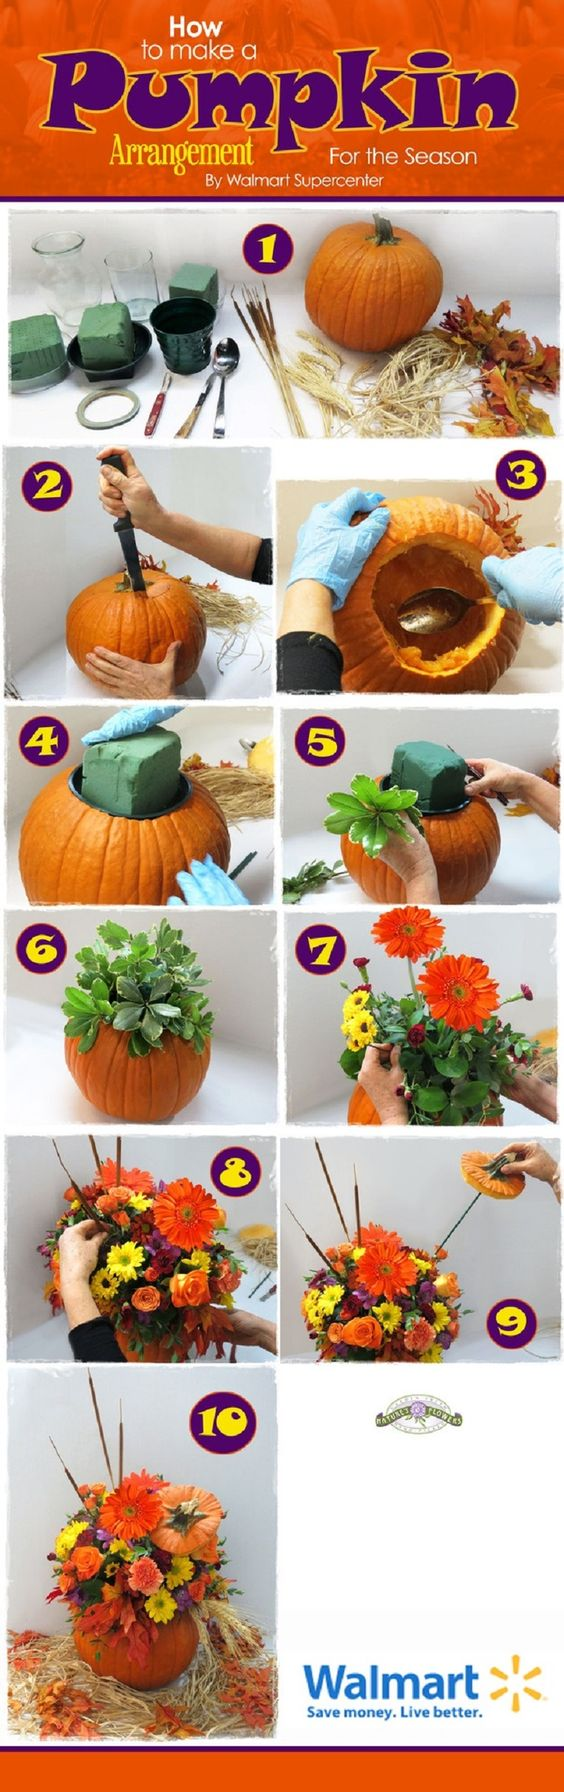 DIY Pumpkin Flower Arangement - 12 Idyllic Flower Arrangement Tutorials | GleamItUp